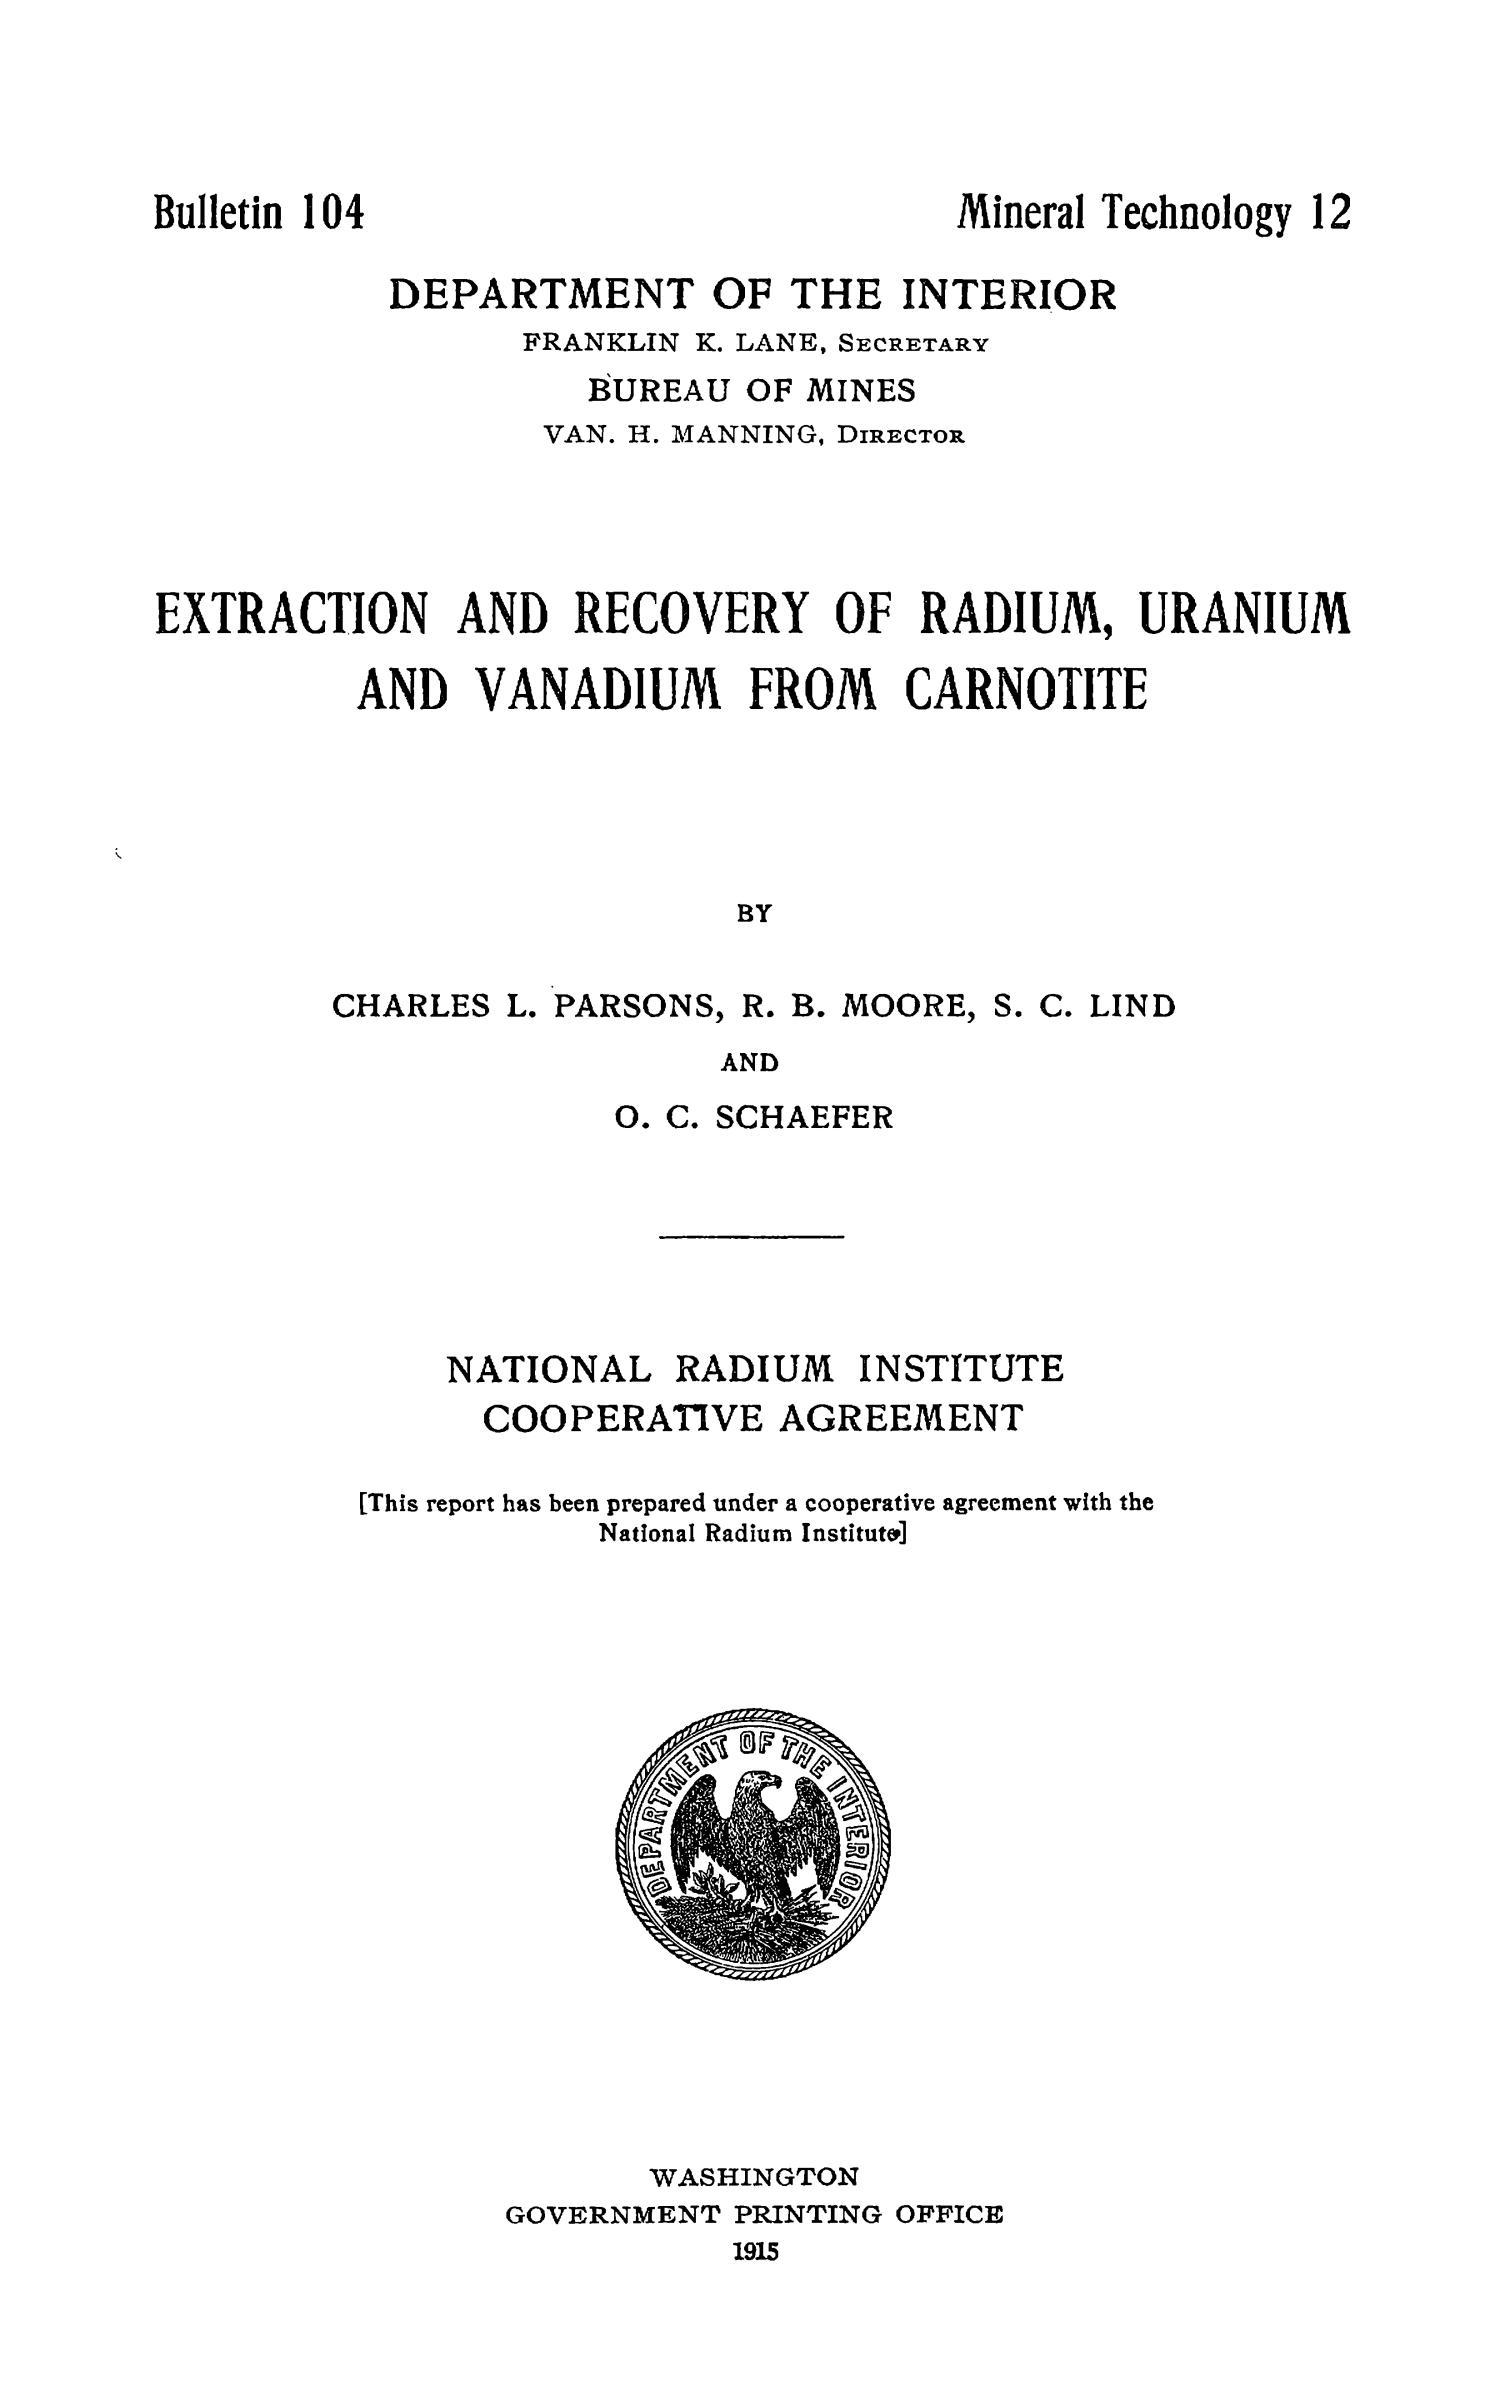 Extraction and recovery of radium uranium and vanadium from extraction and recovery of radium uranium and vanadium from carnotite digital library gamestrikefo Image collections